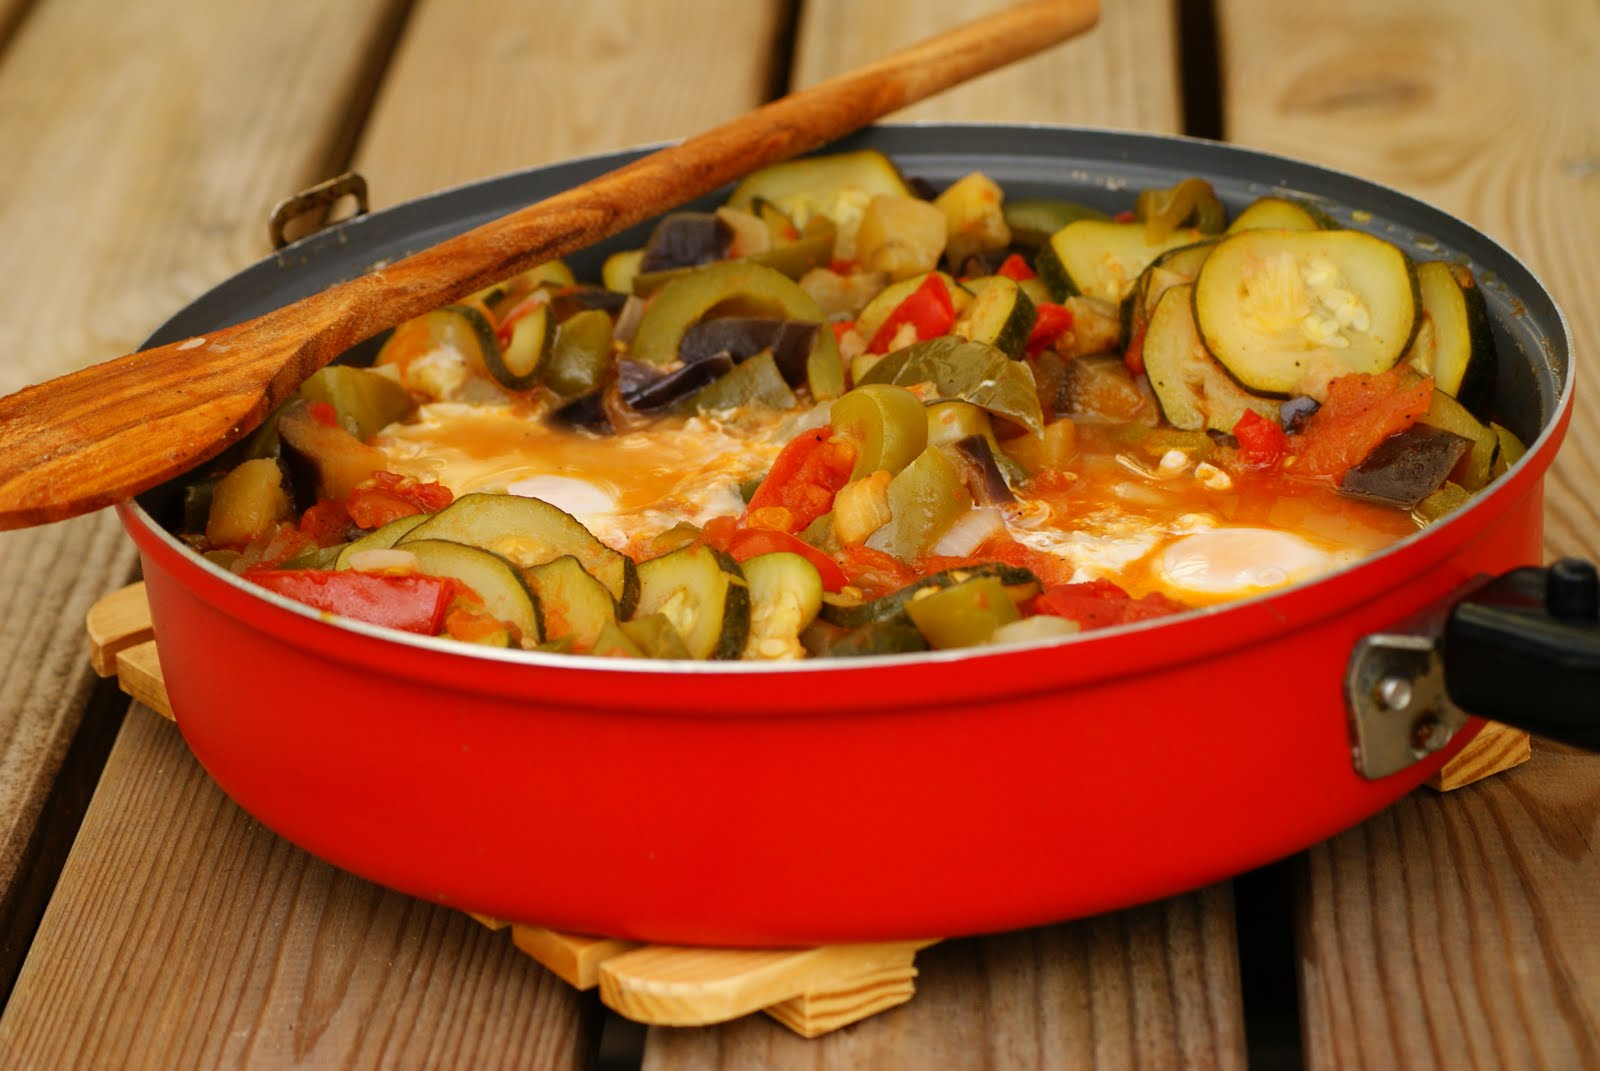 Food Moods - Healthy, wholesome seasonal cooking: Ratatouille